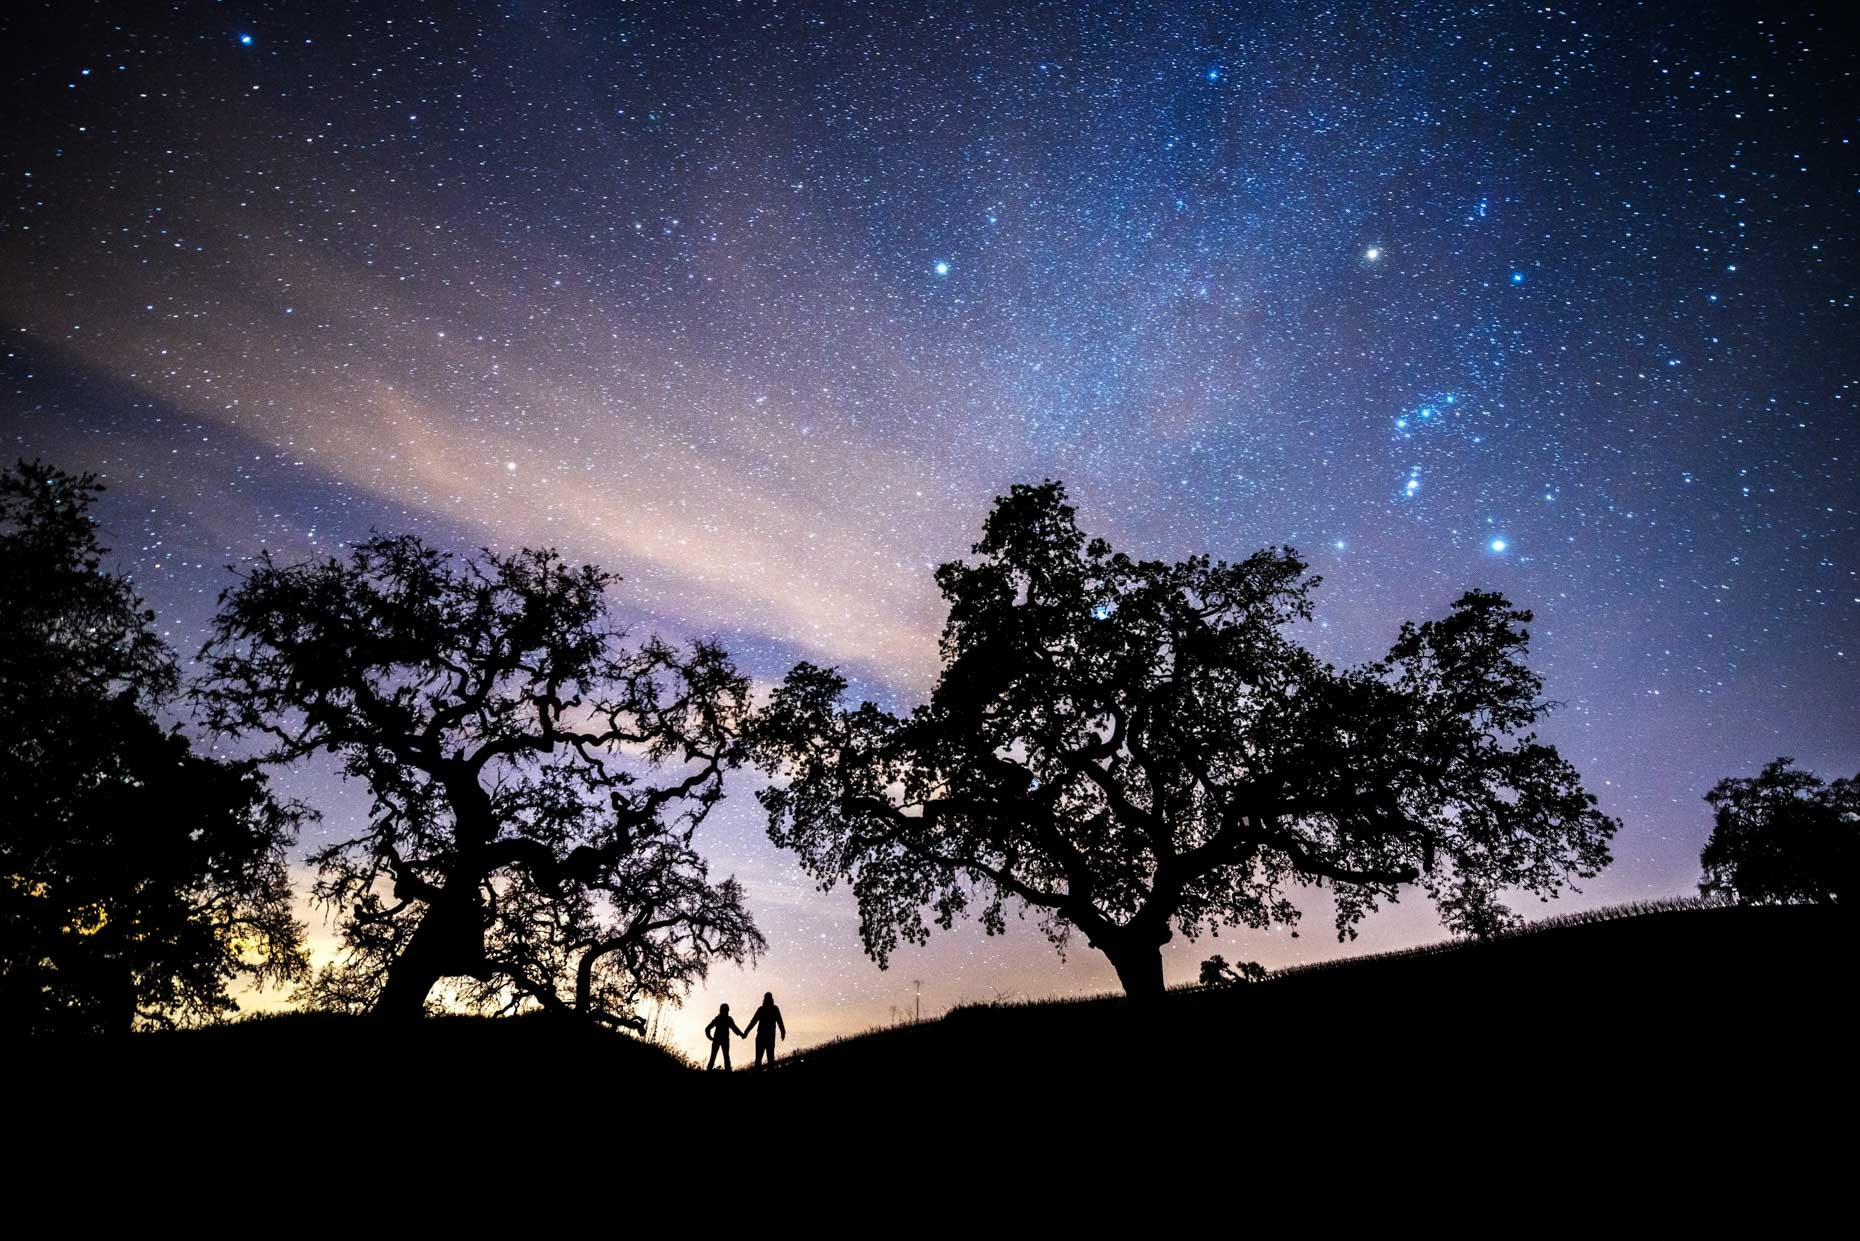 Couple Under The Stars - California